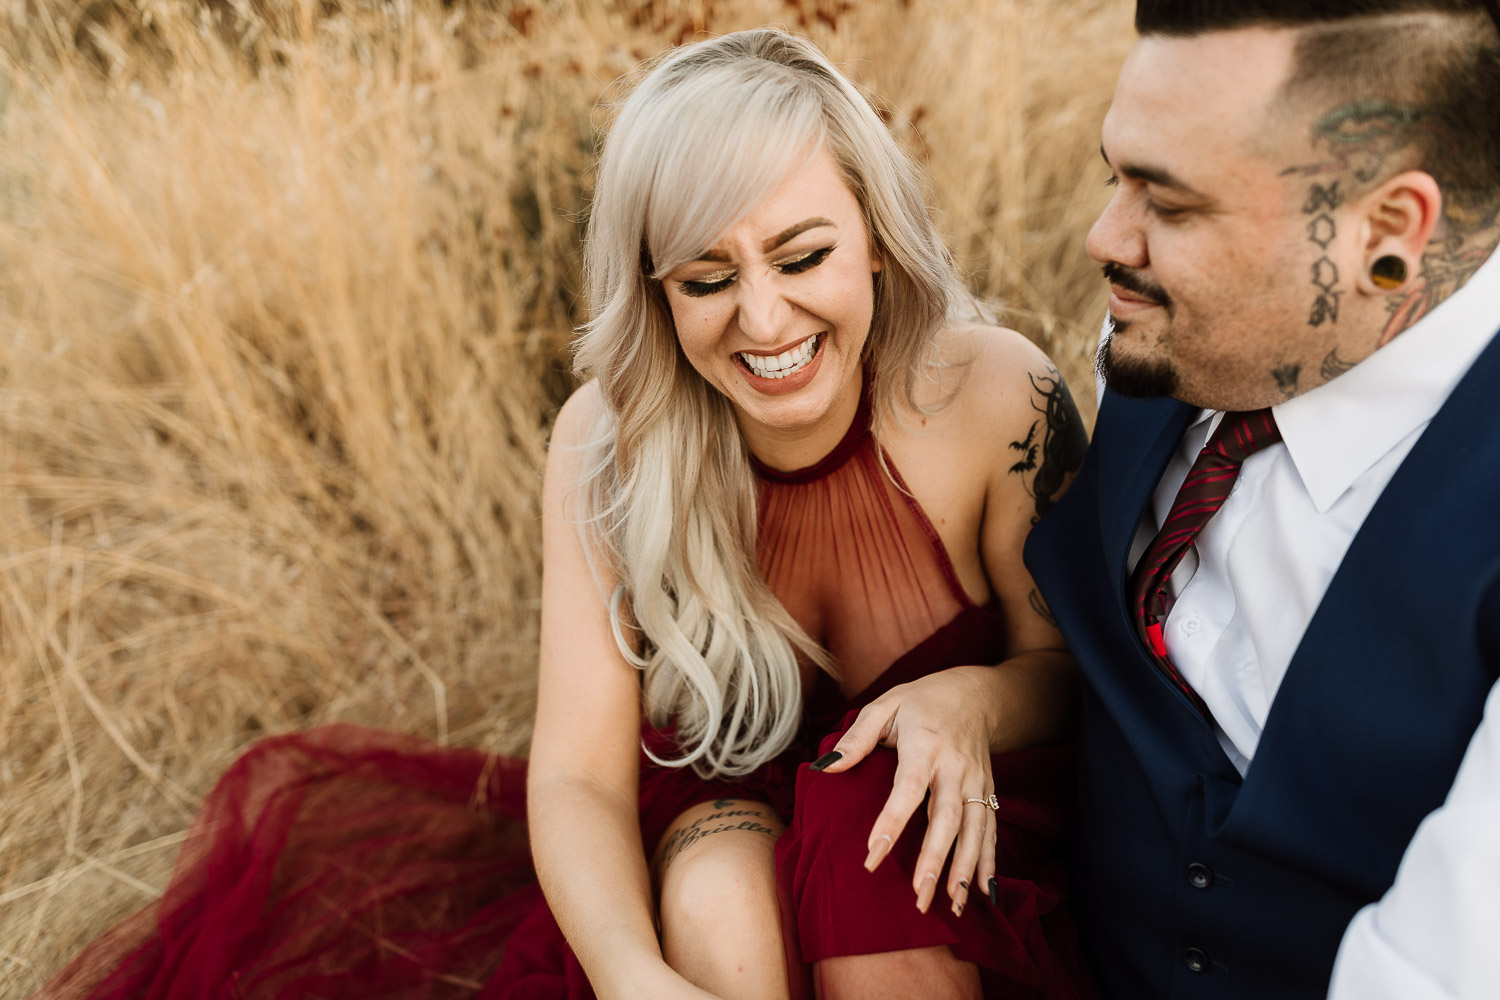 Rugged, Romantic Engagment Session by Sam Payne Photo